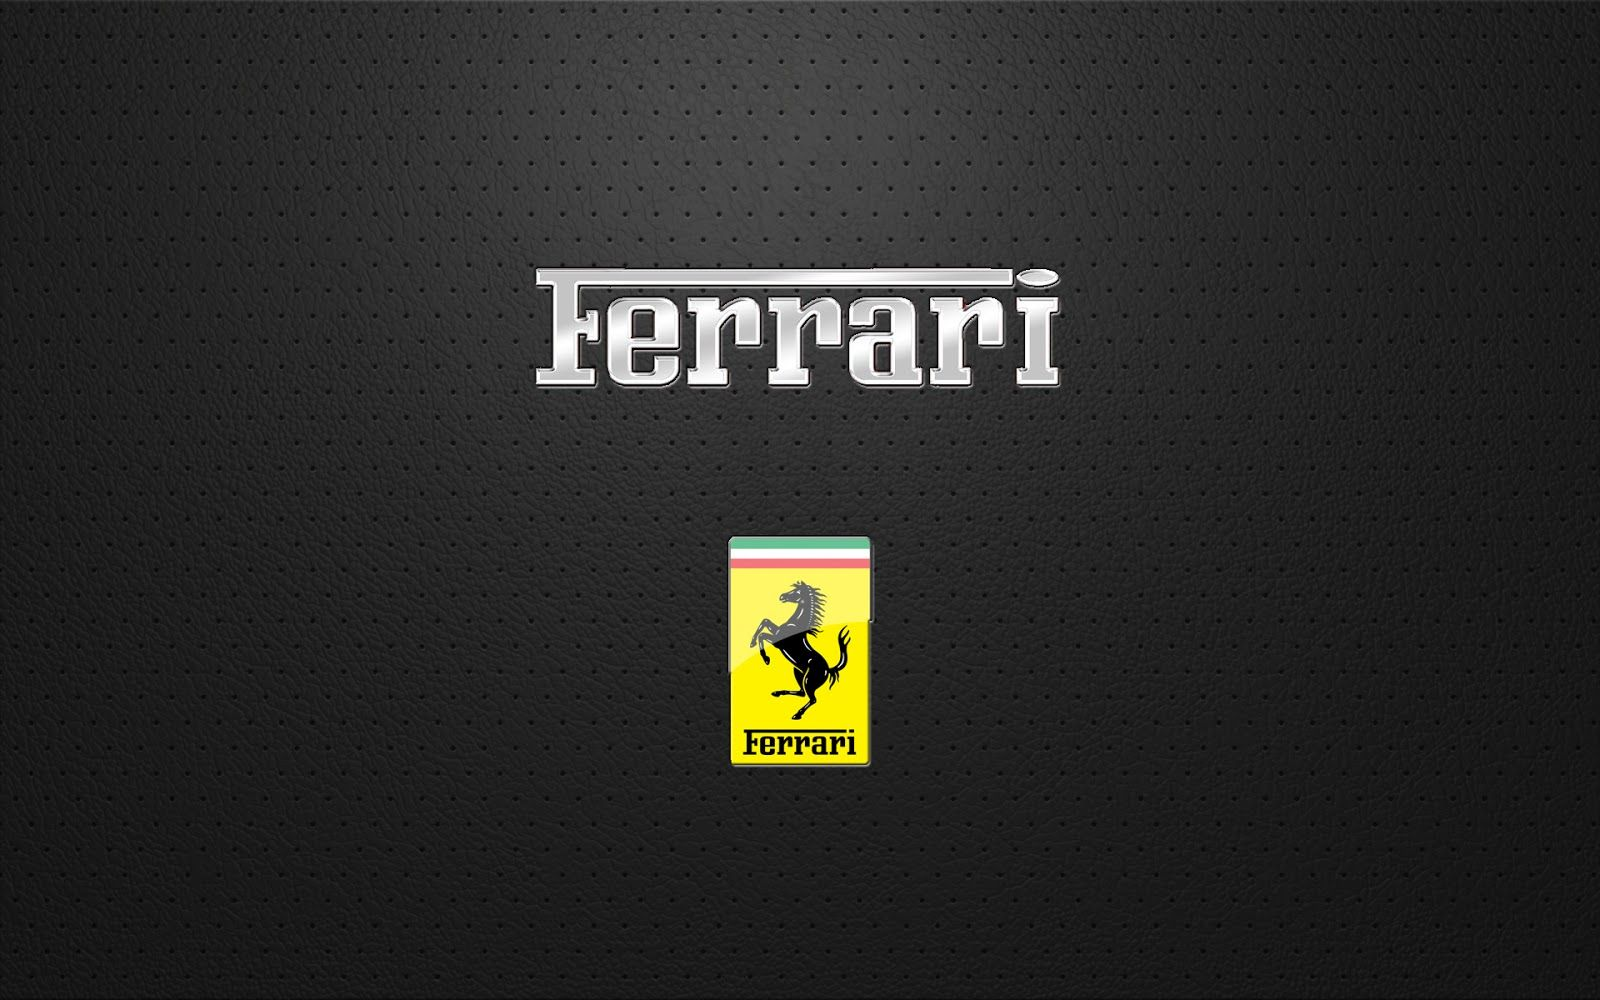 Ferrari Logo - Ferrari Logo, Ferrari Car Symbol Meaning and History | Car Brand ...